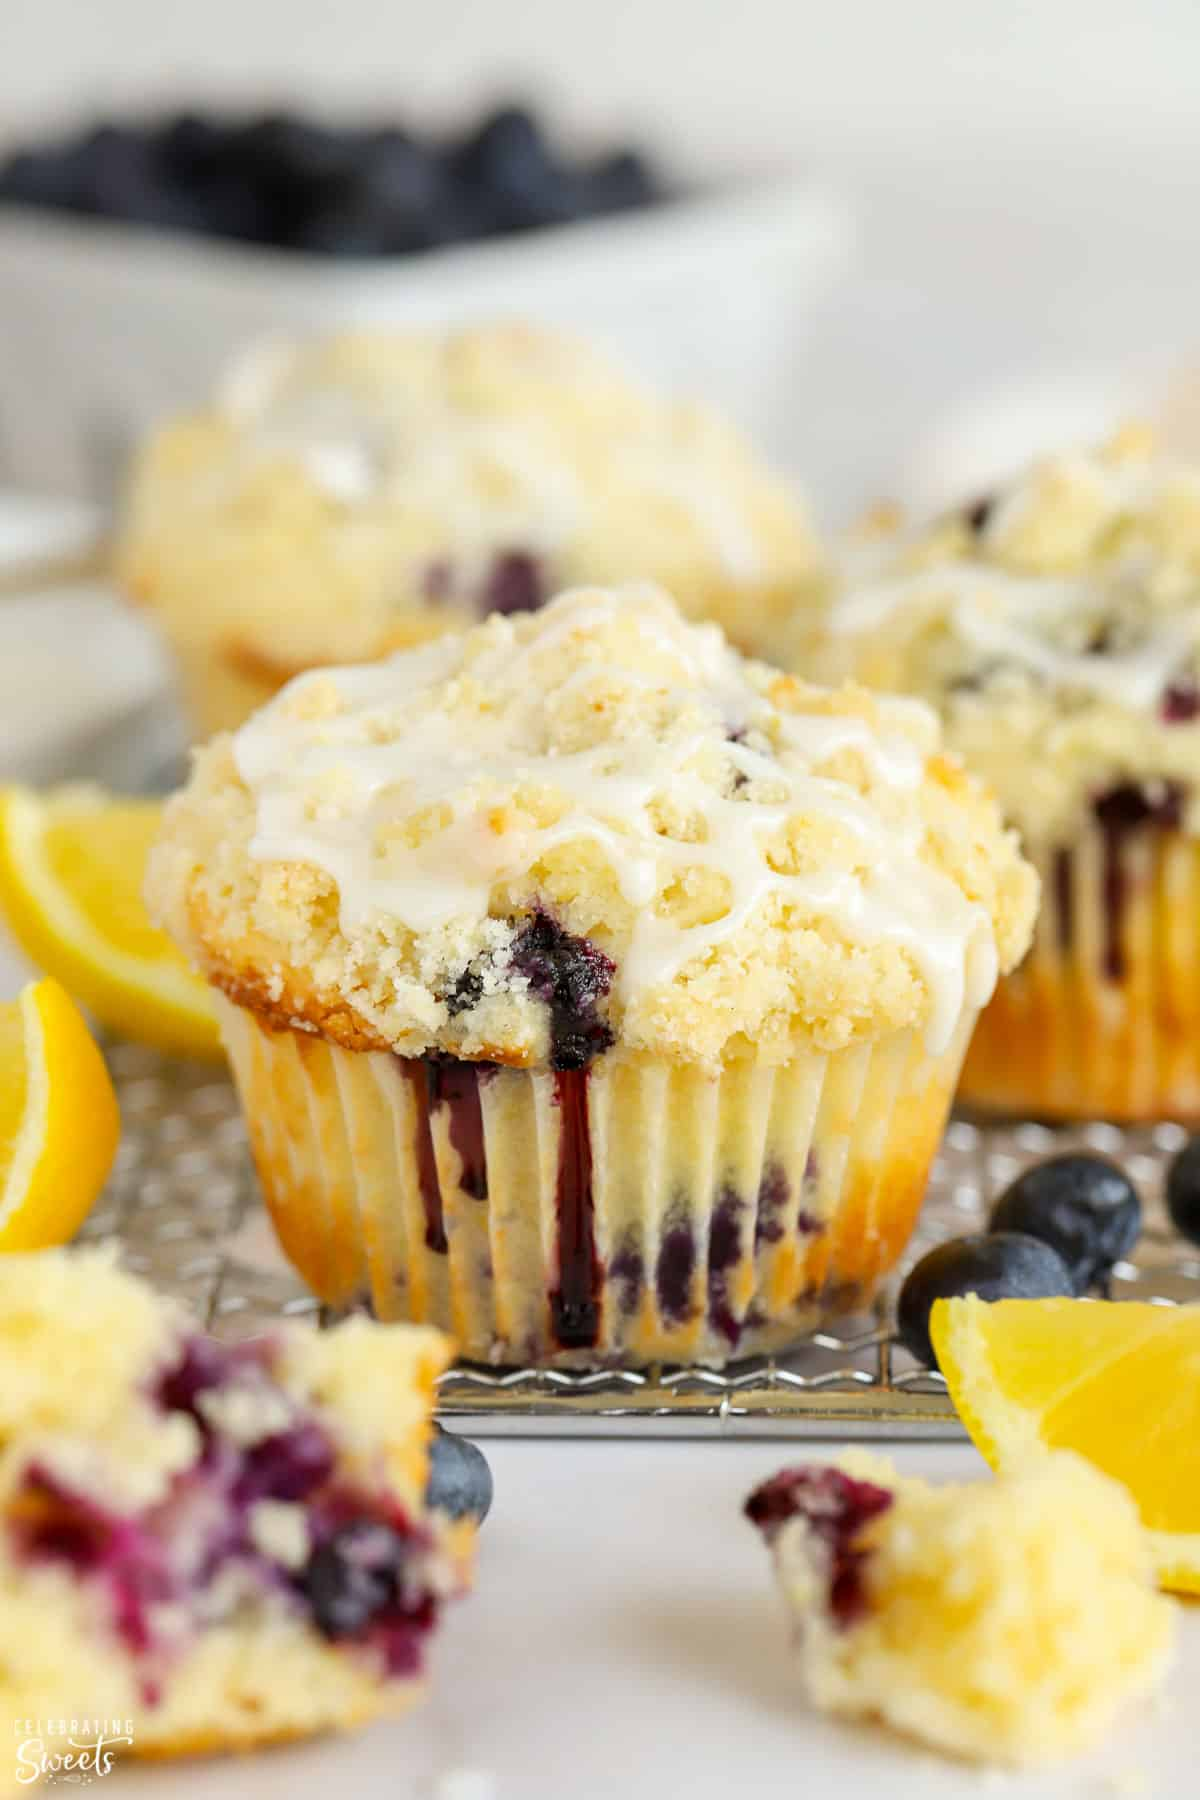 Closeup of a lemon blueberry muffin with crumb topping and white icing